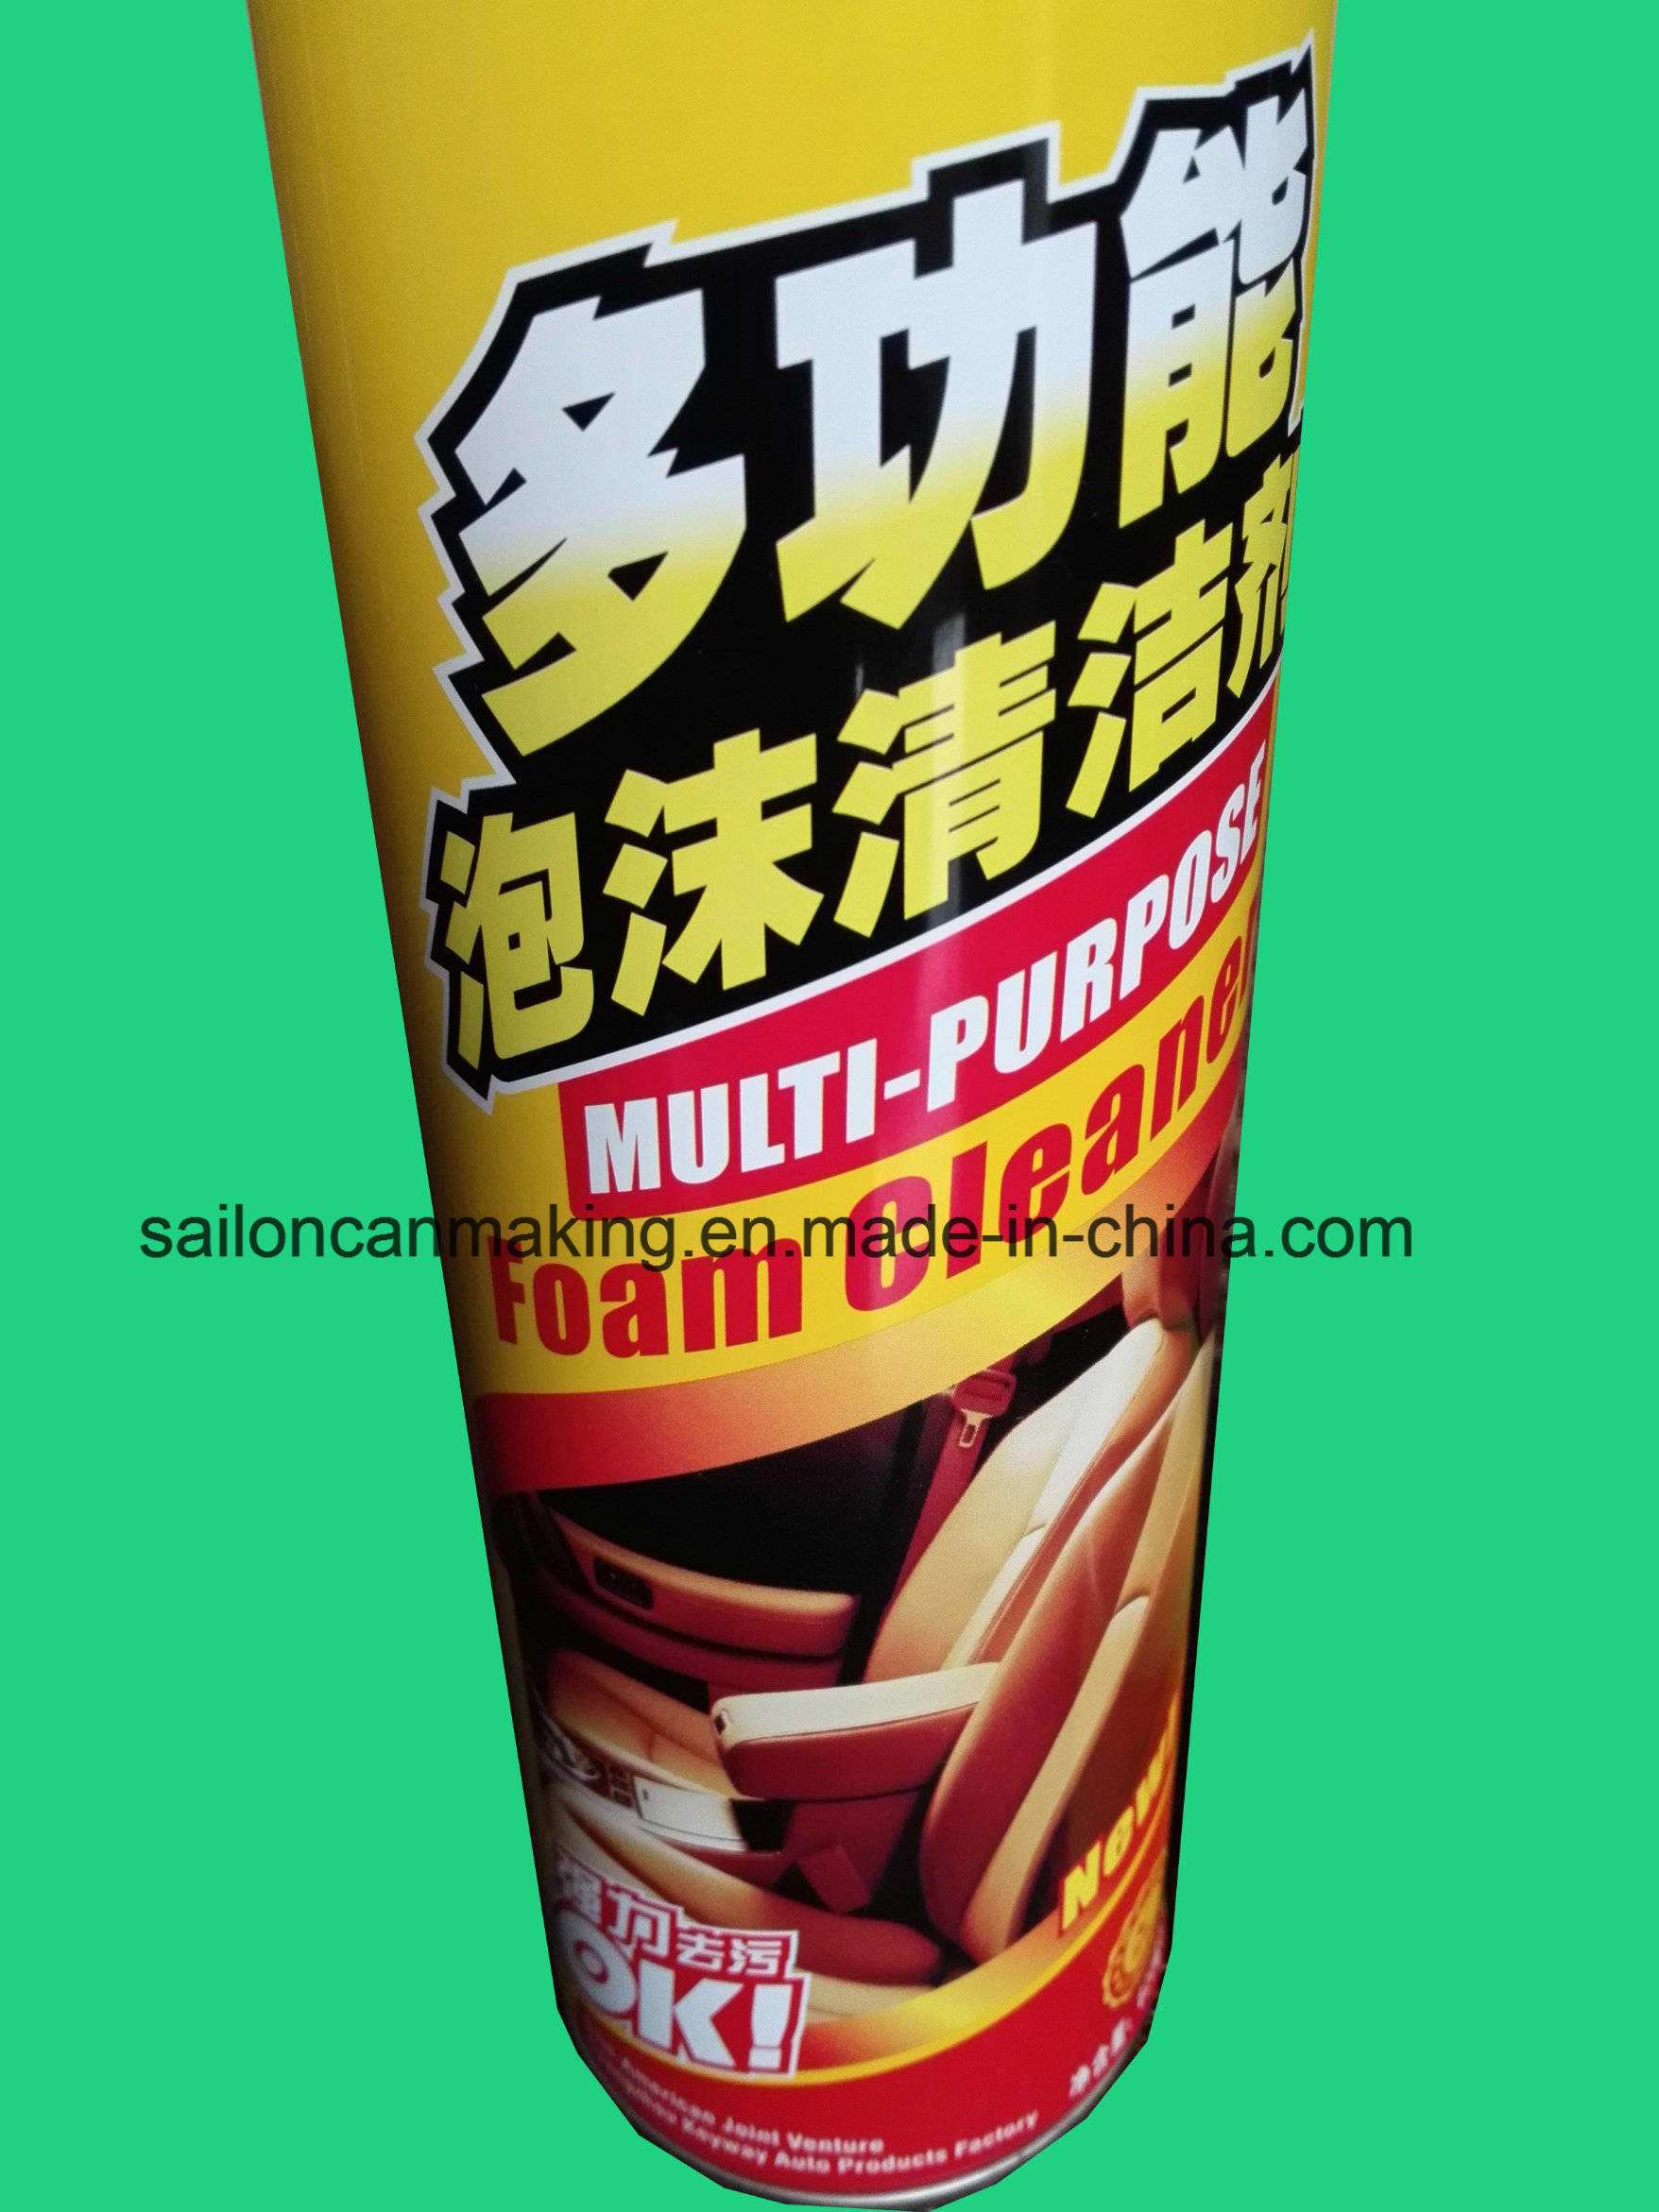 Aerosol Cans for Functional Foam Cleaner